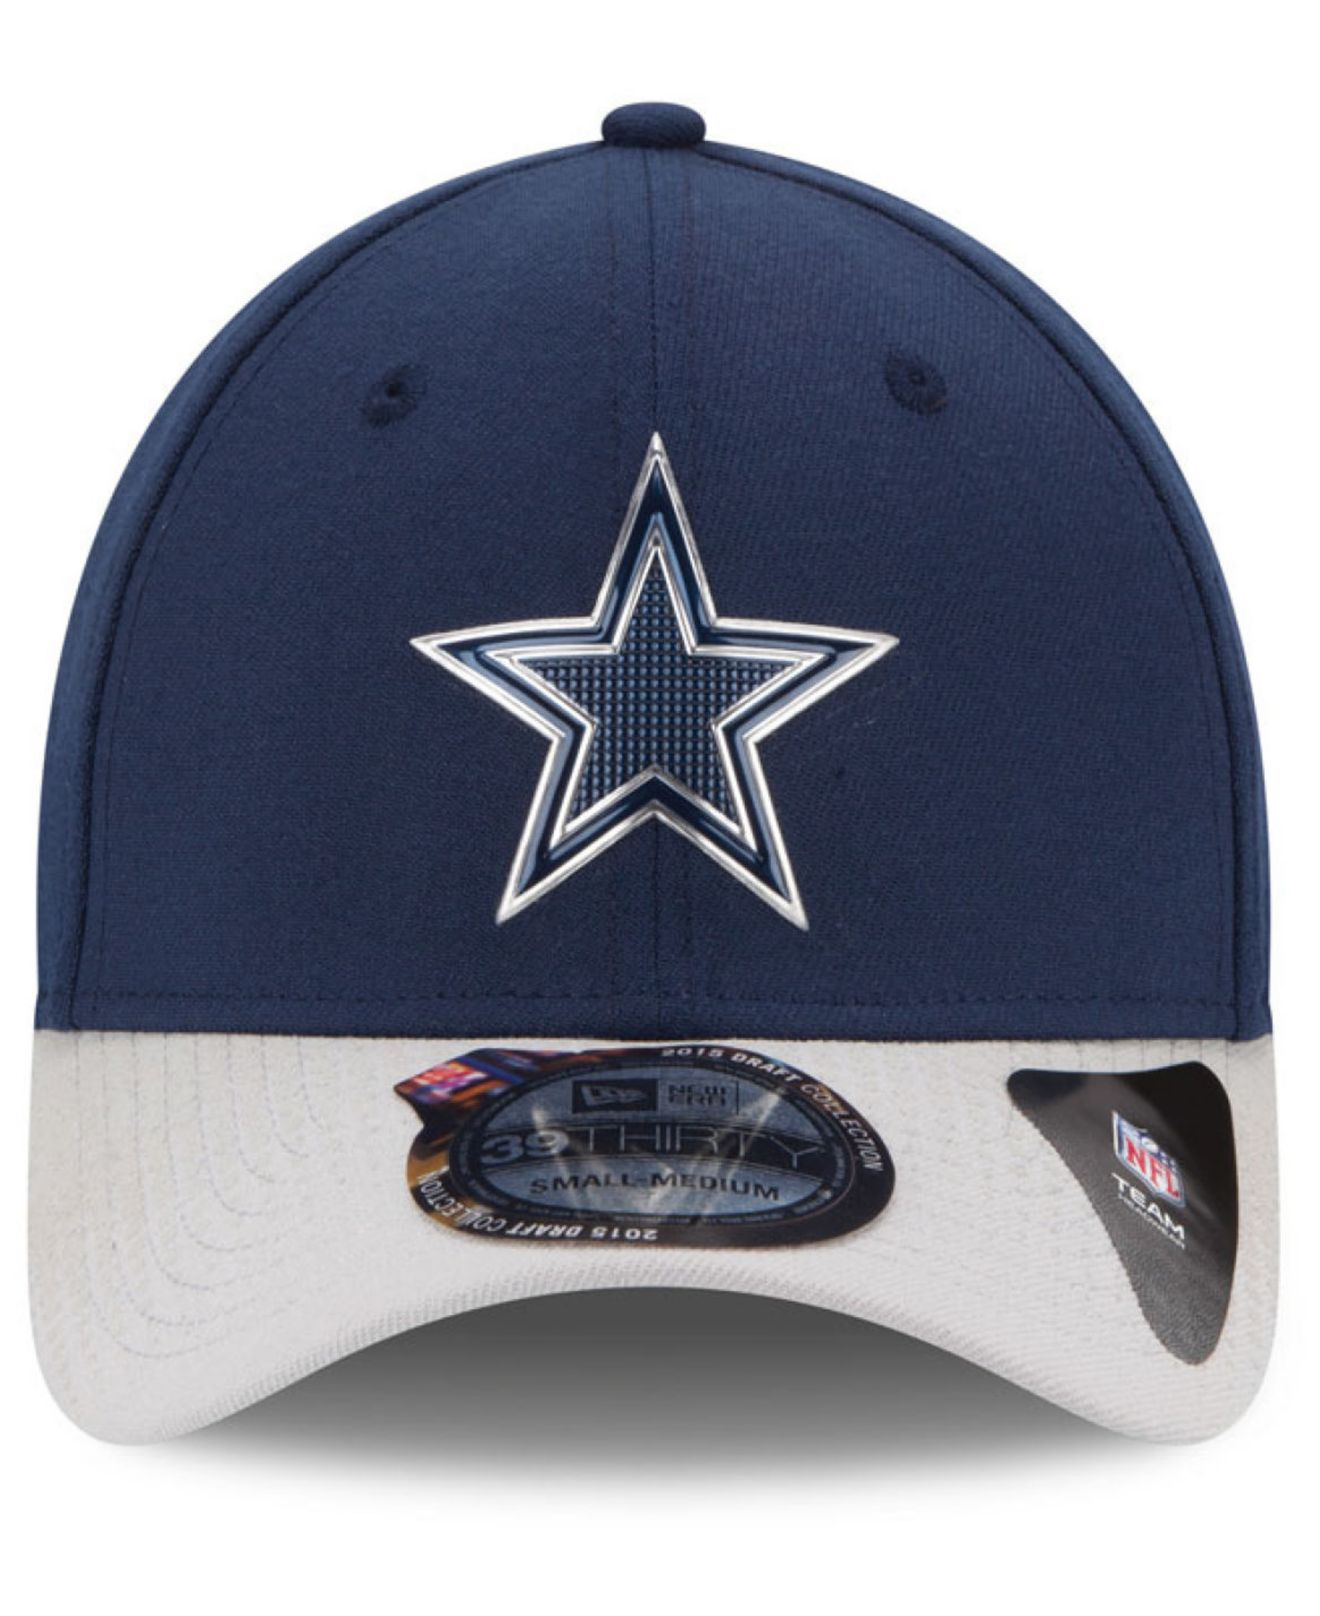 1d5b94b8bd2 Lyst Ktz Dallas Cowboys 2016 Nfl Draft 39thirty Cap In Blue For Men. Dallas  Cowboys New Era ...